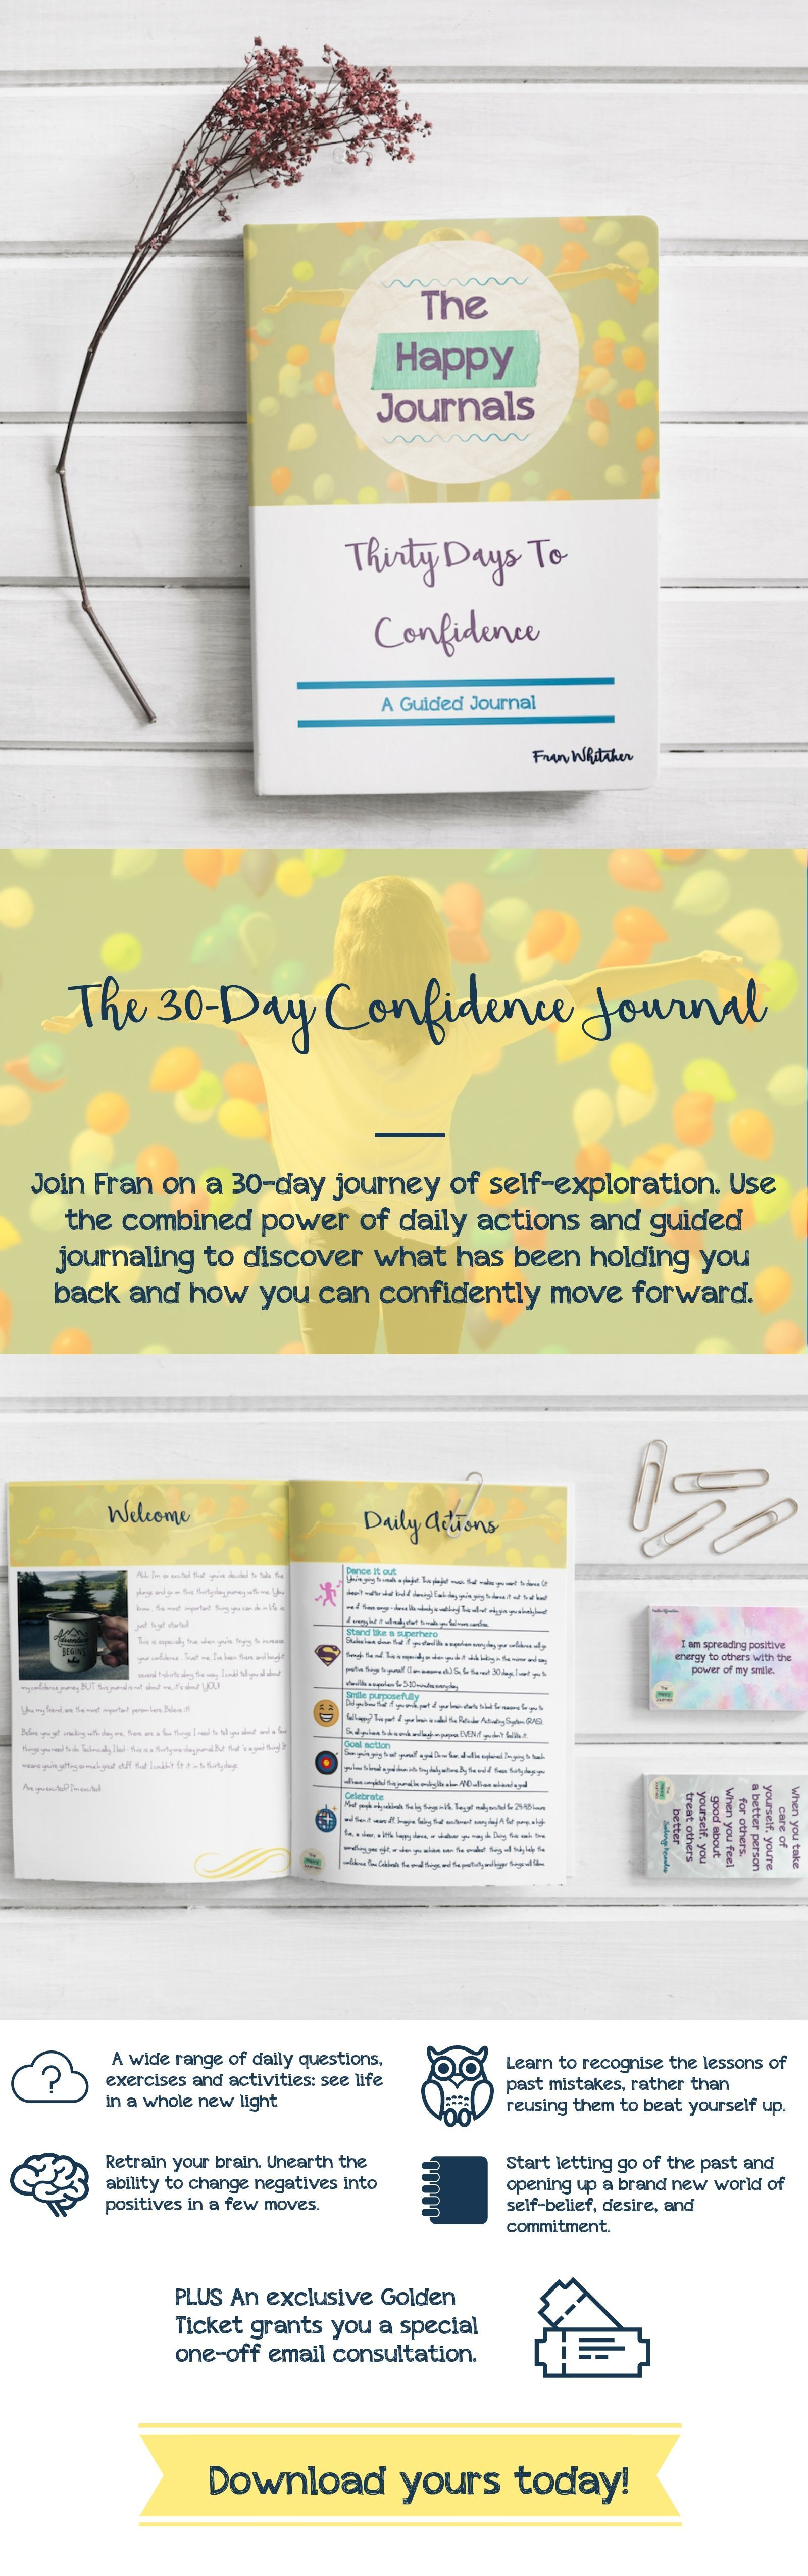 Join The Happy Journals On A 30 Day Journey Of Self